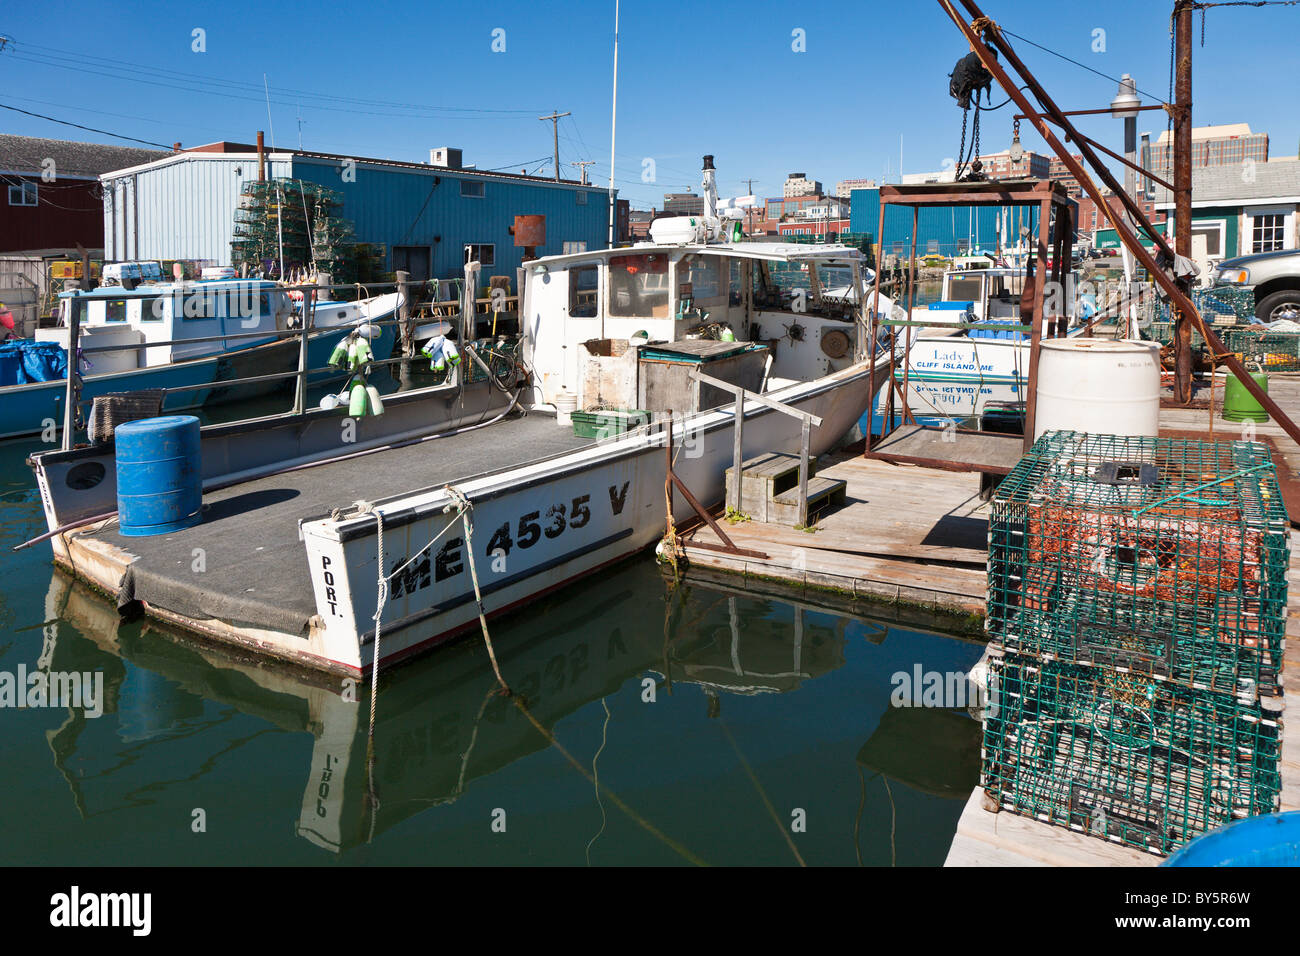 Commercial lobster boat at dock in Portland, Maine Stock